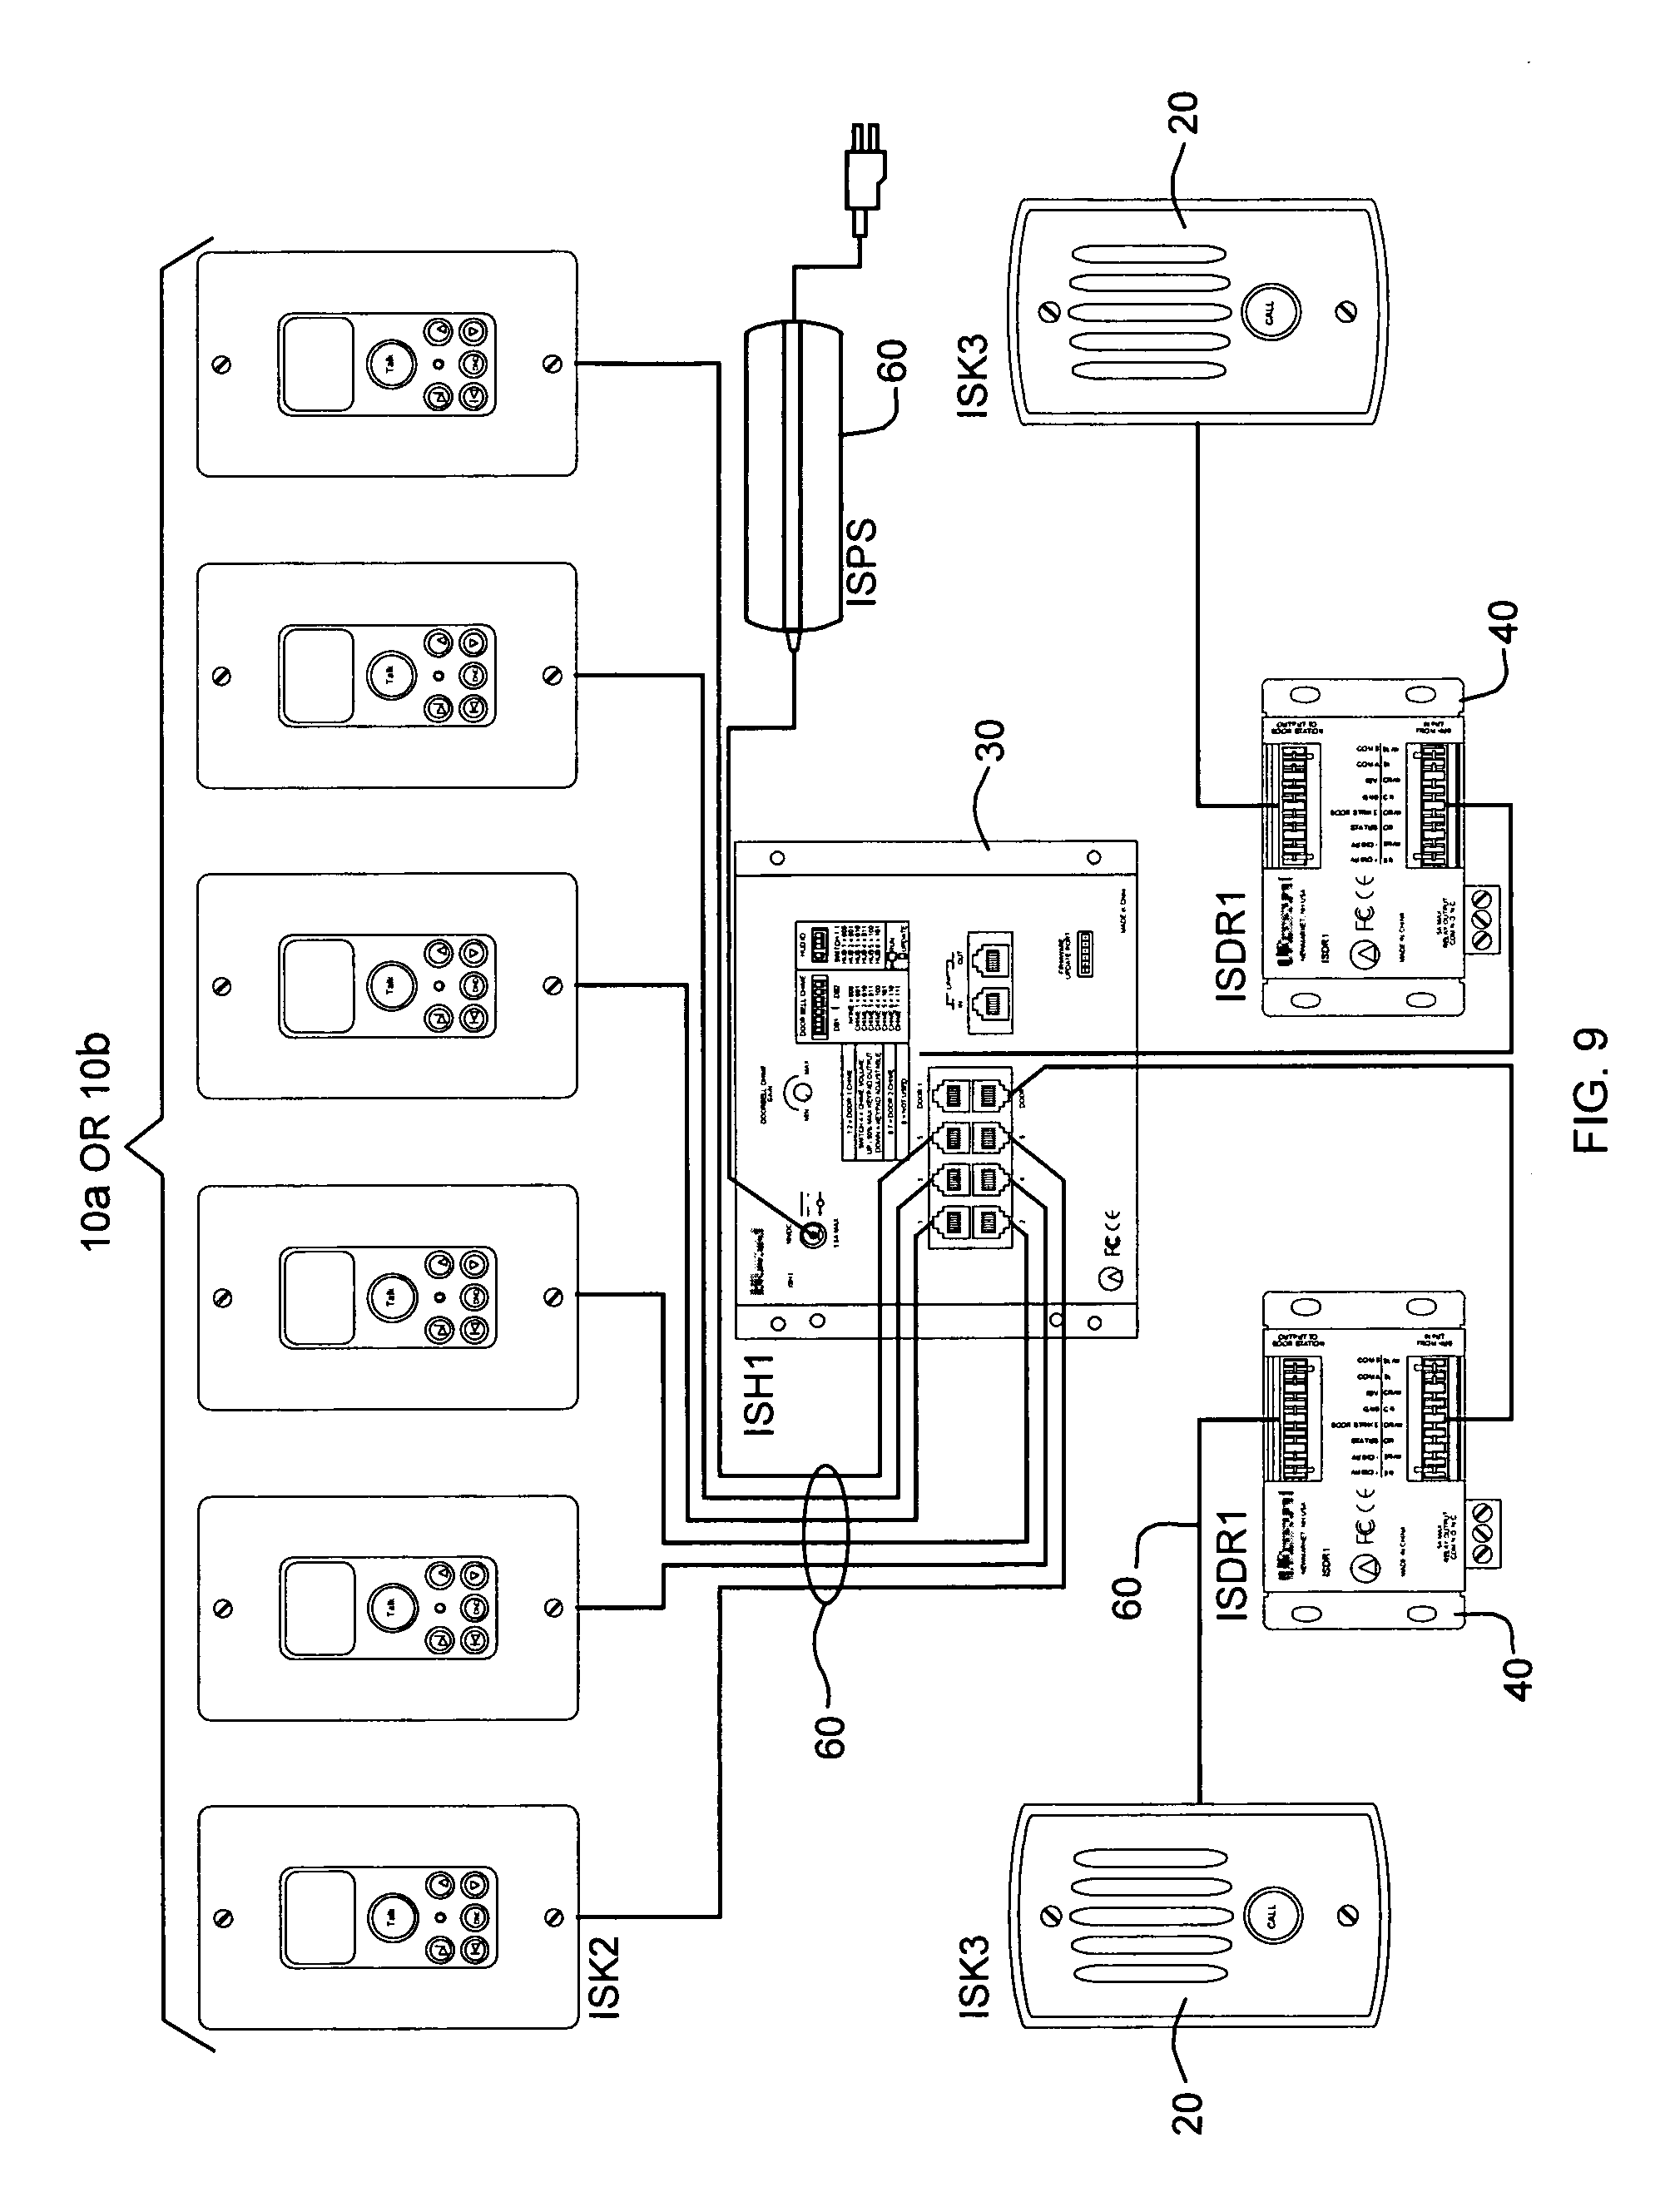 patent us8189753 distributed intercom system audio bus patent drawing